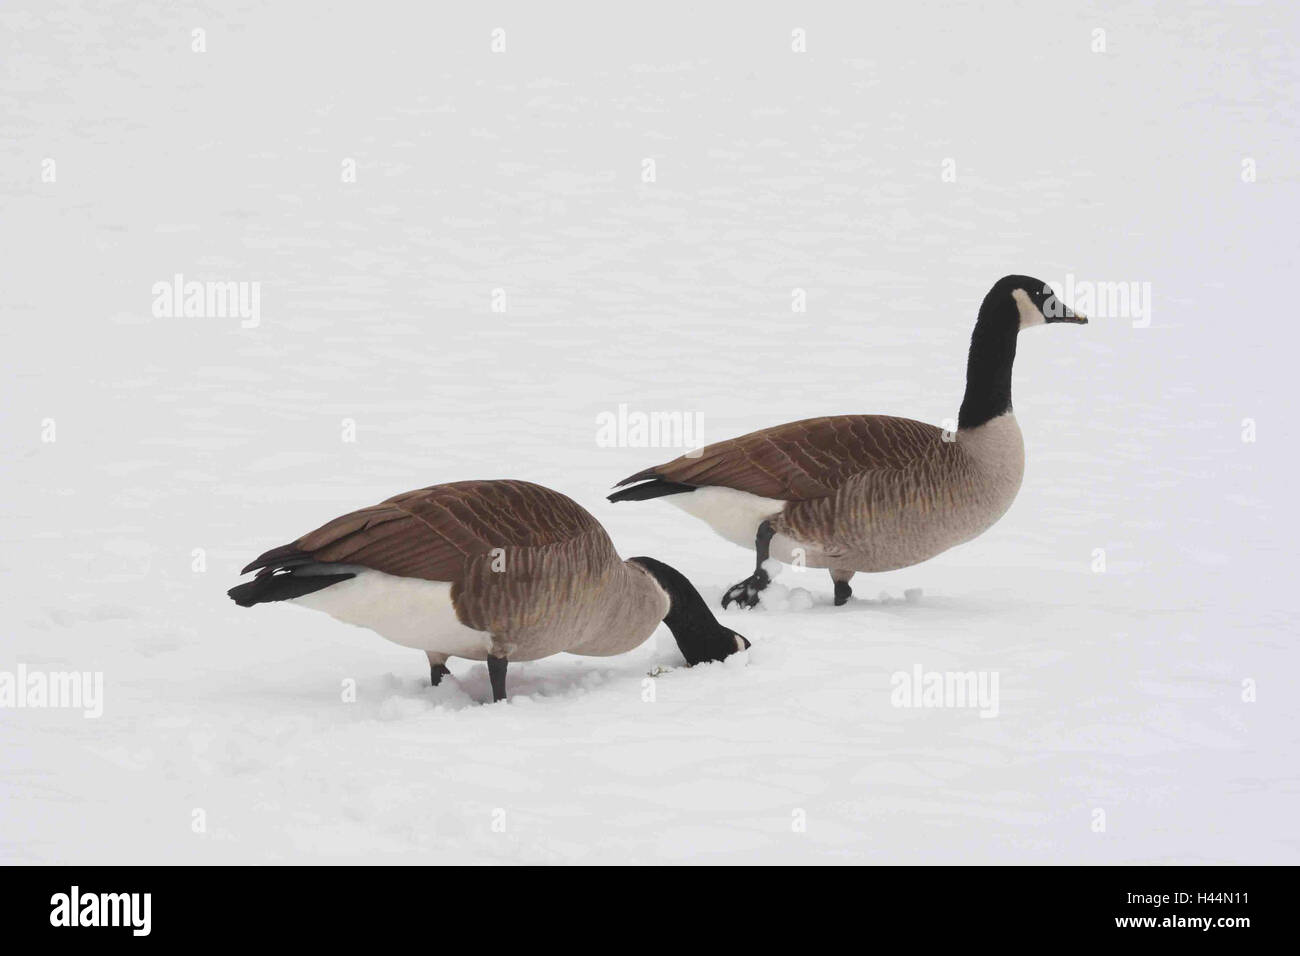 Canada geese, snow, lining search, landscape format, North America, goose, bird, geese, anatids, goose's birds, - Stock Image